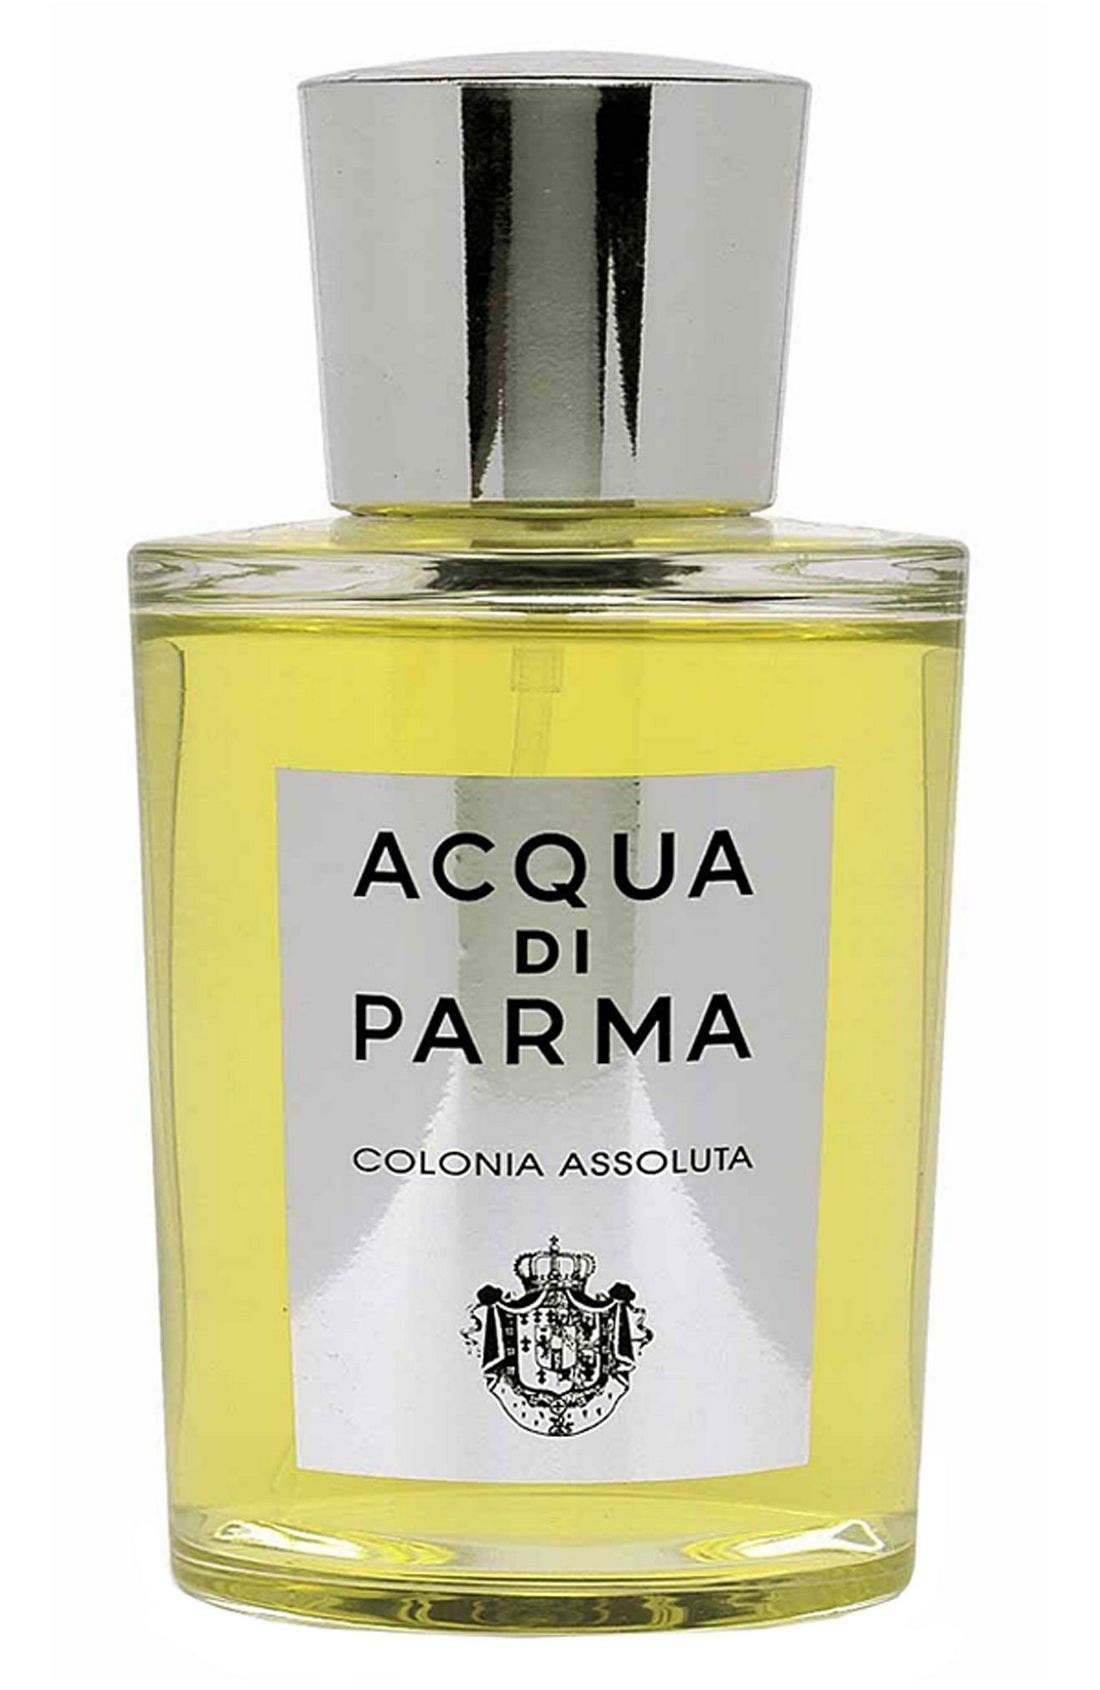 Acqua di Parma 'Colonia Assoluta' Eau de Cologne Natural Spray